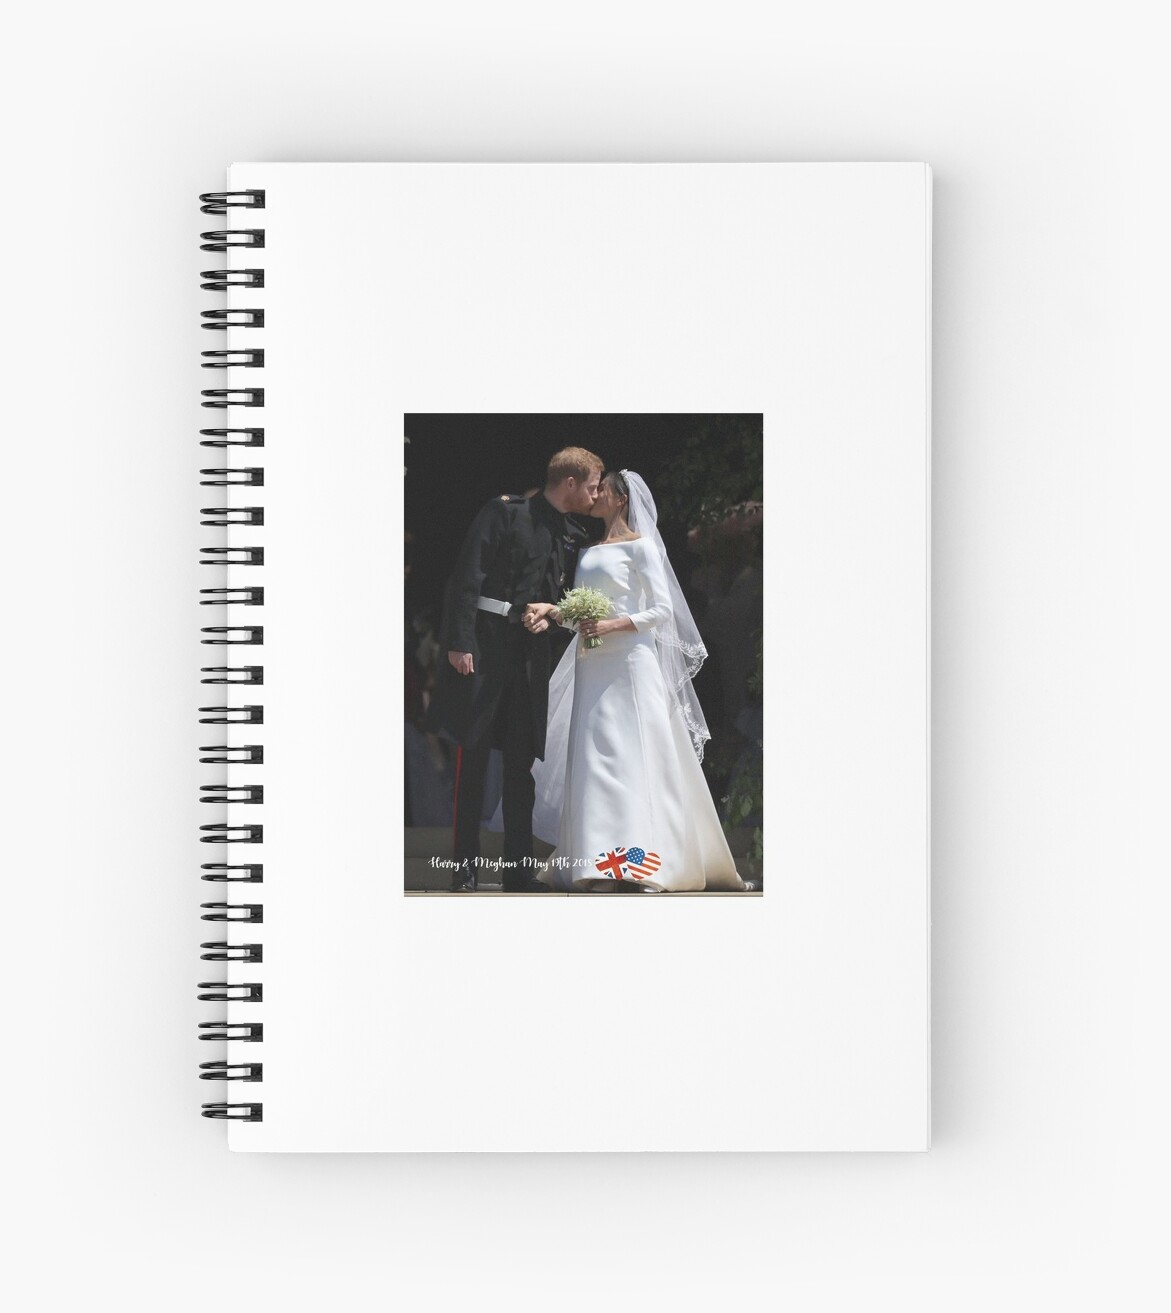 May 19th 2018: When Harry married Meghan  by LaSposadiSabbia